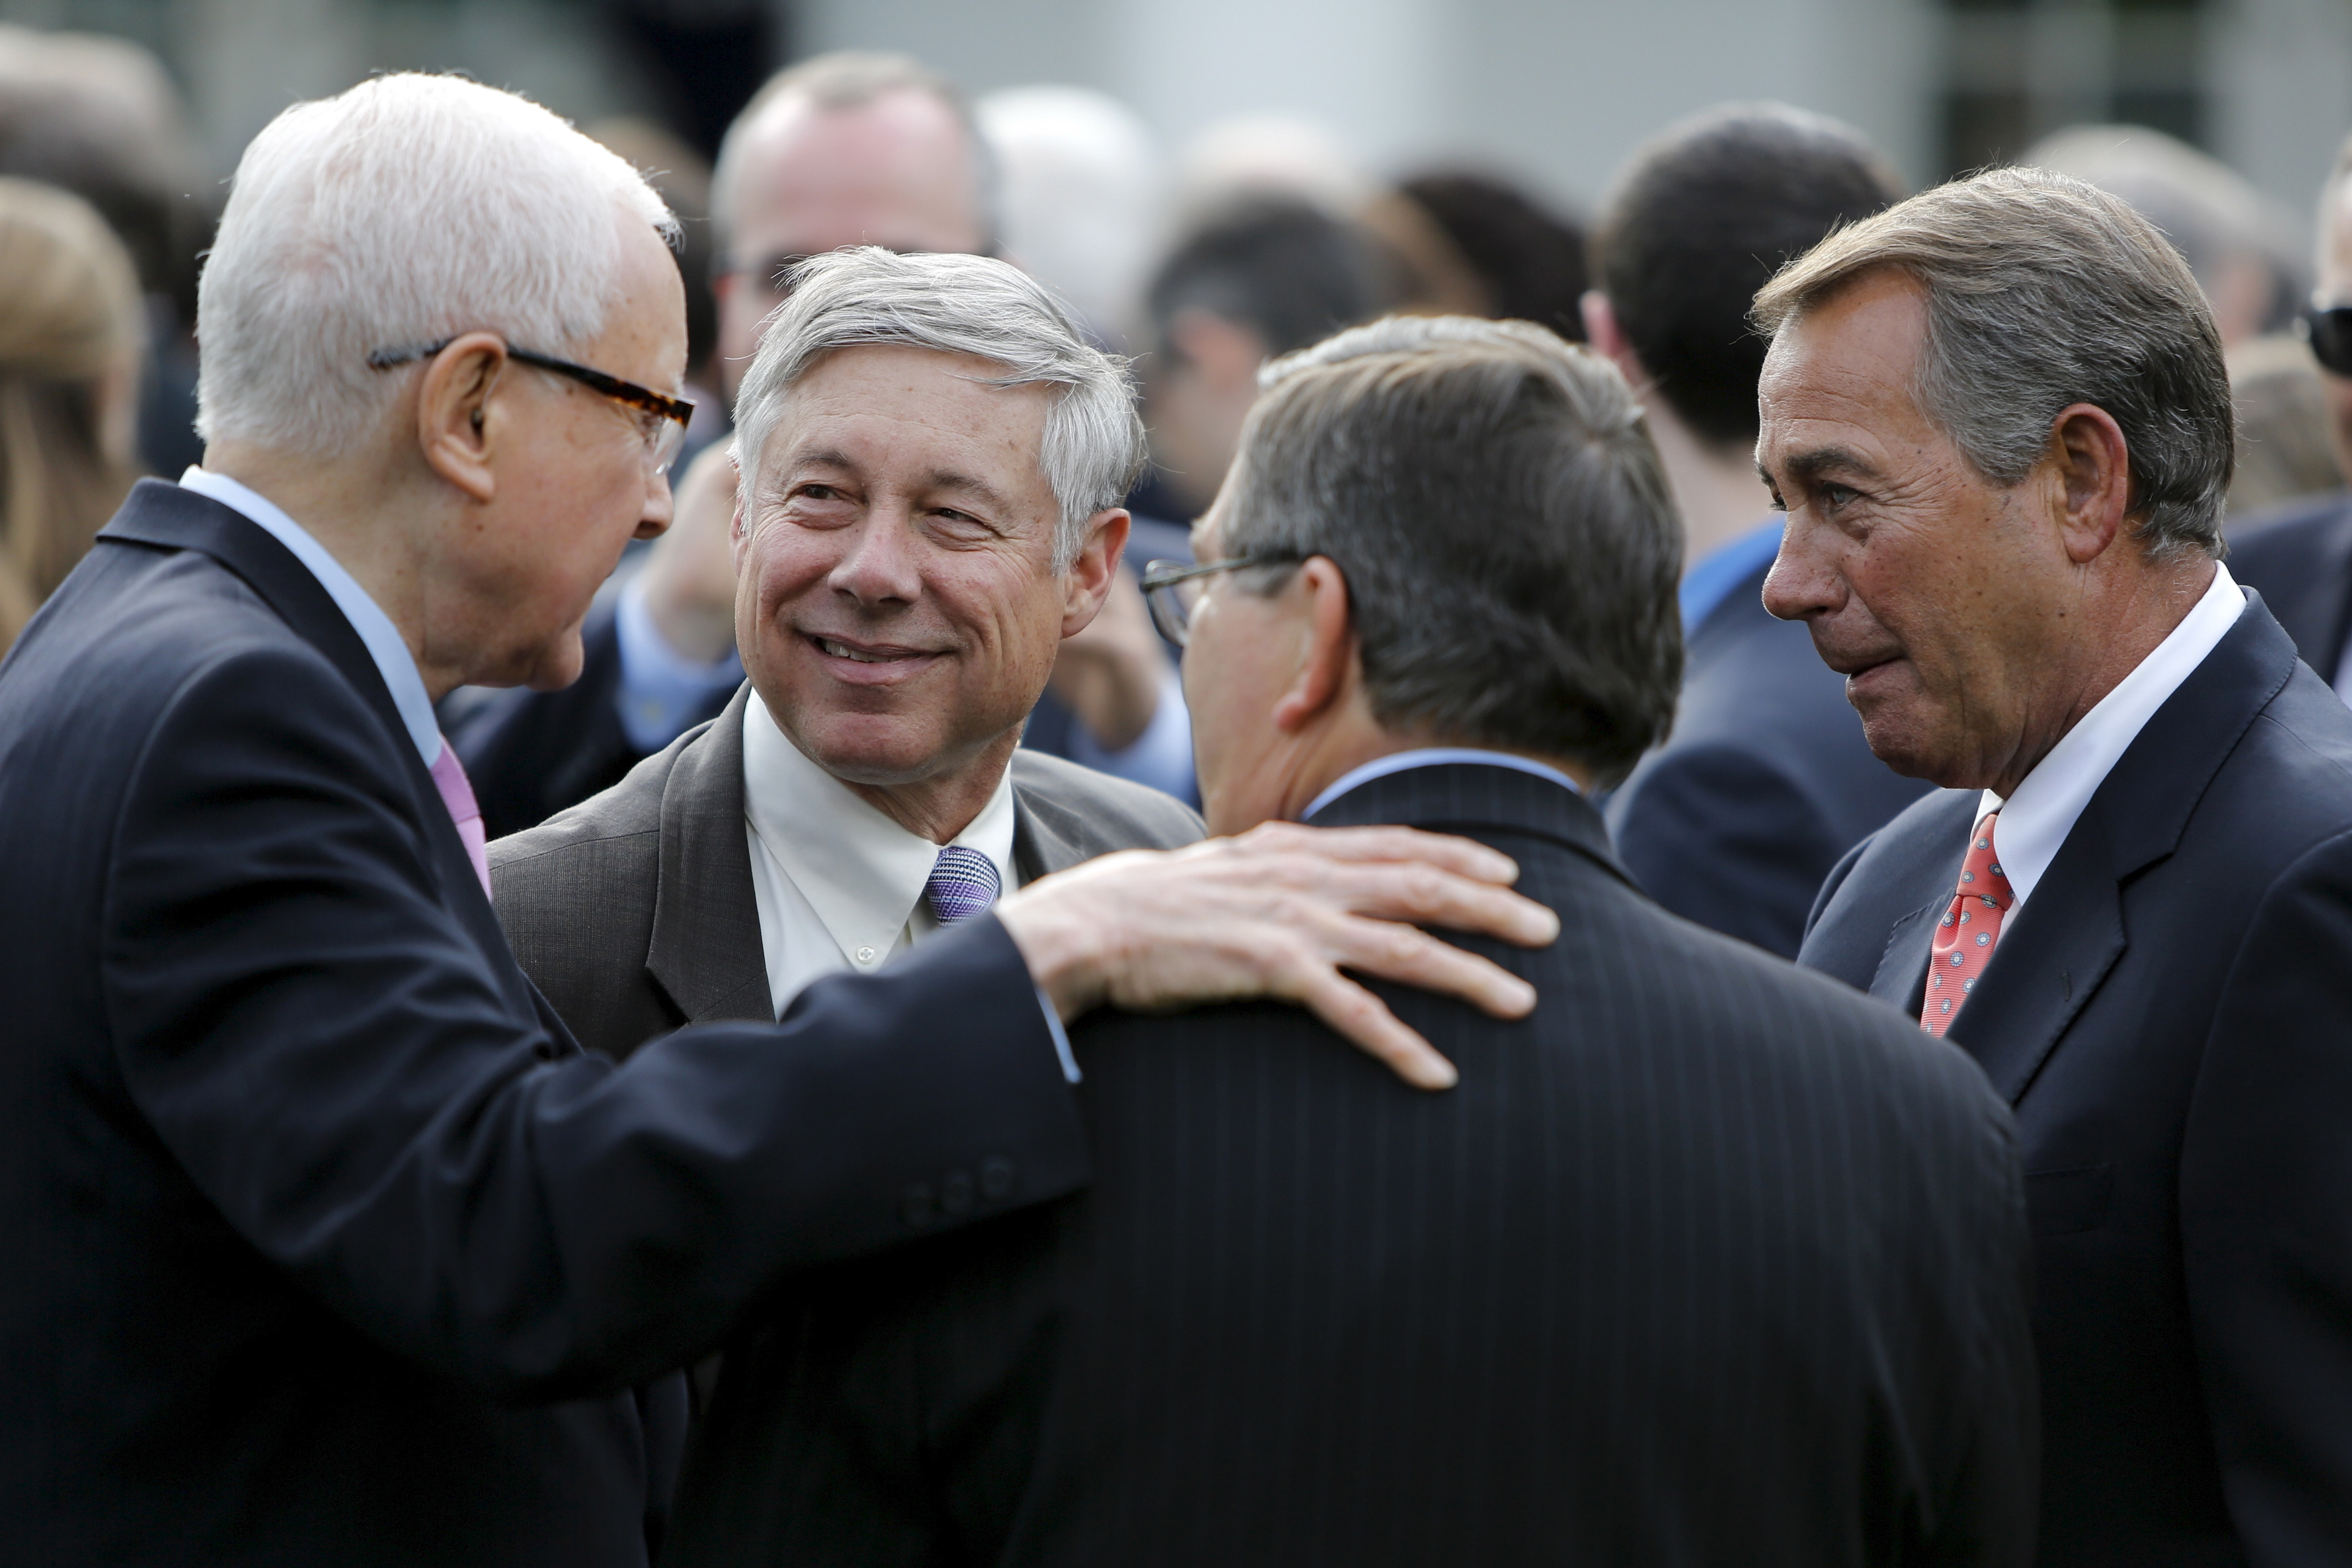 U.S. Senator Orrin Hatch (R-UT) (L) speaks with Representative Fred Upton (R-MI) (2nd L) and House Speaker John Boehner (R-OH) (R) at a reception for supporters of H.R. 2, the Medicare Access and CHIP Reauthorization Act of 2015 in the Rose Garden at the White House in Washington April 21, 2015. REUTERS/Jonathan Ernst